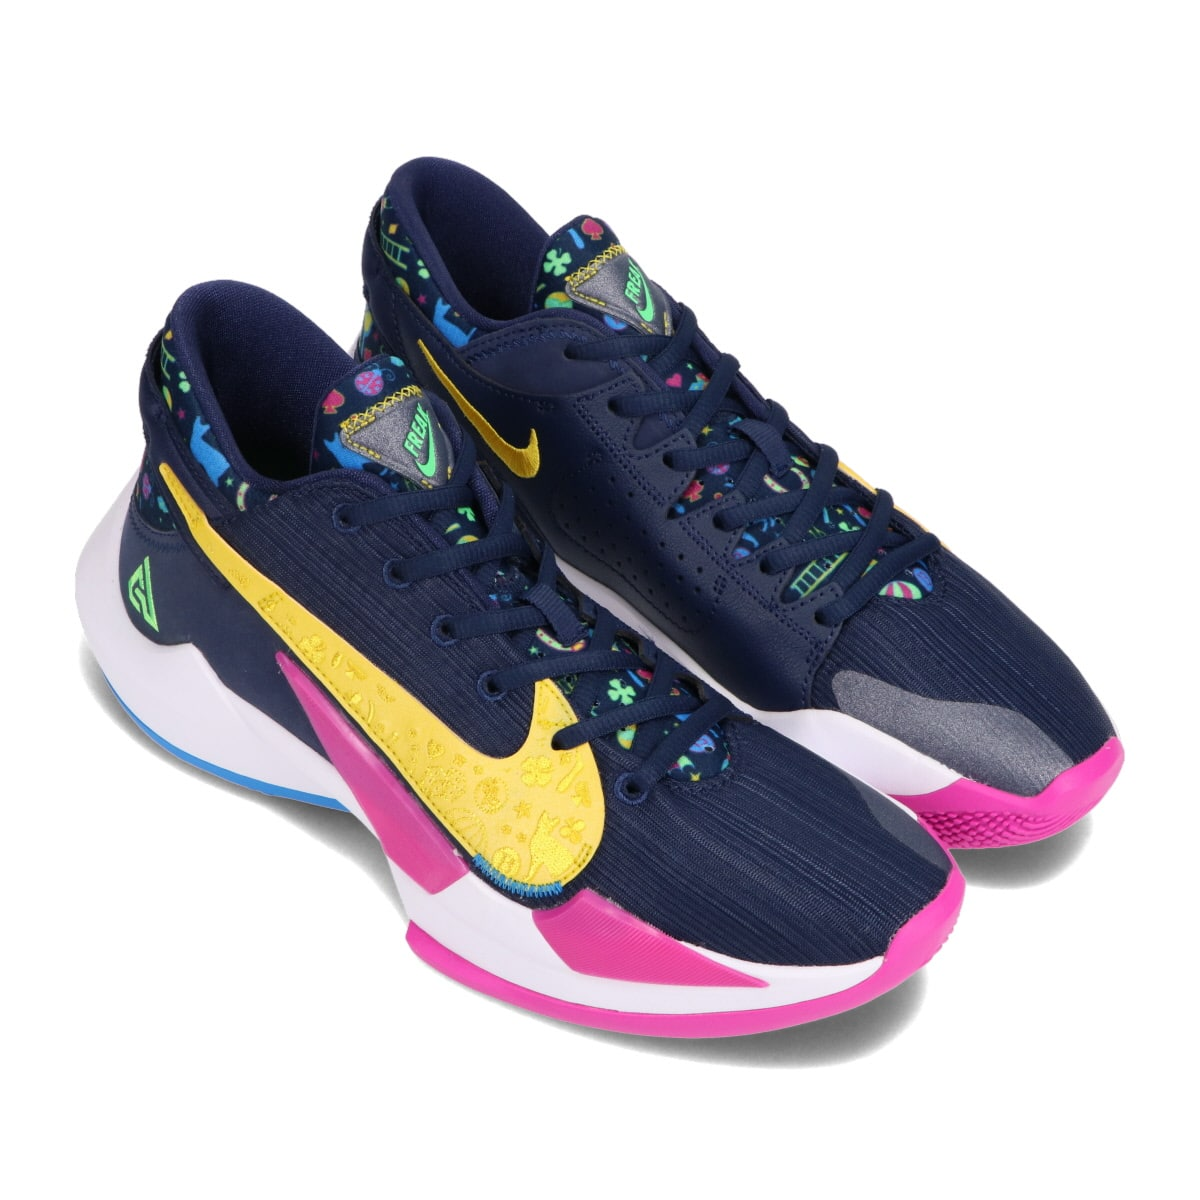 NIKE ZOOM FREAK 2 MIDNIGHT NAVY/POISON GREEN-FIRE PINK 20HO-S_photo_large